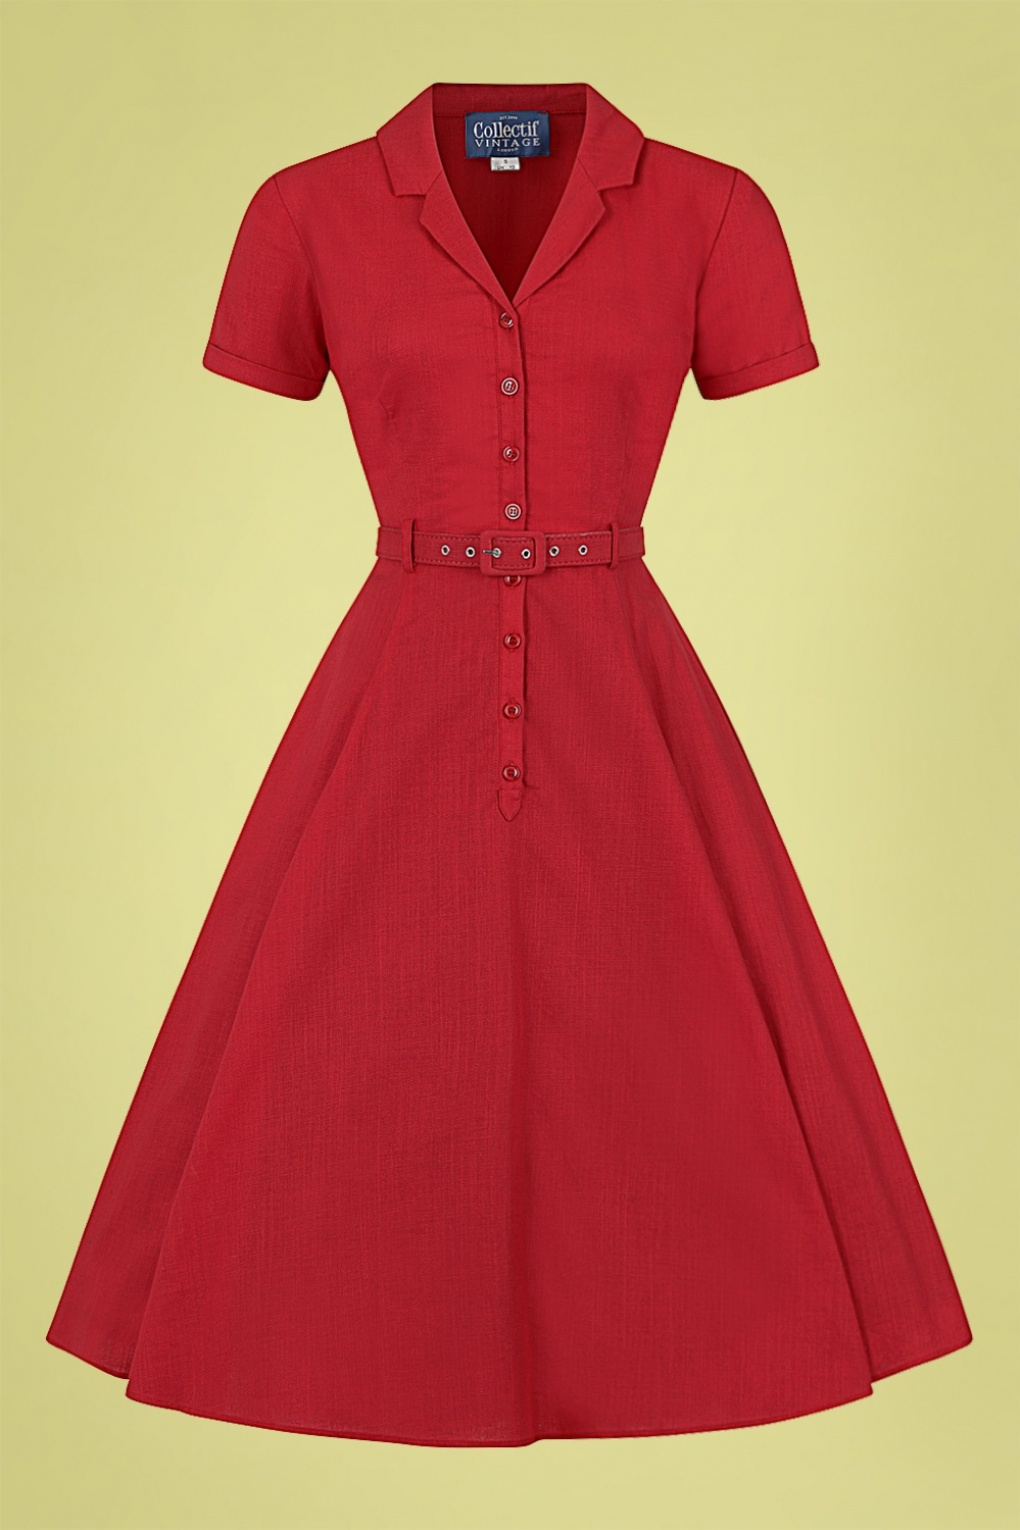 Modest, Mature, Mrs. Vintage Dresses – 20s, 30s, 40s, 50s, 60s 50s Caterina Swing Dress in Strawberry Red £65.46 AT vintagedancer.com